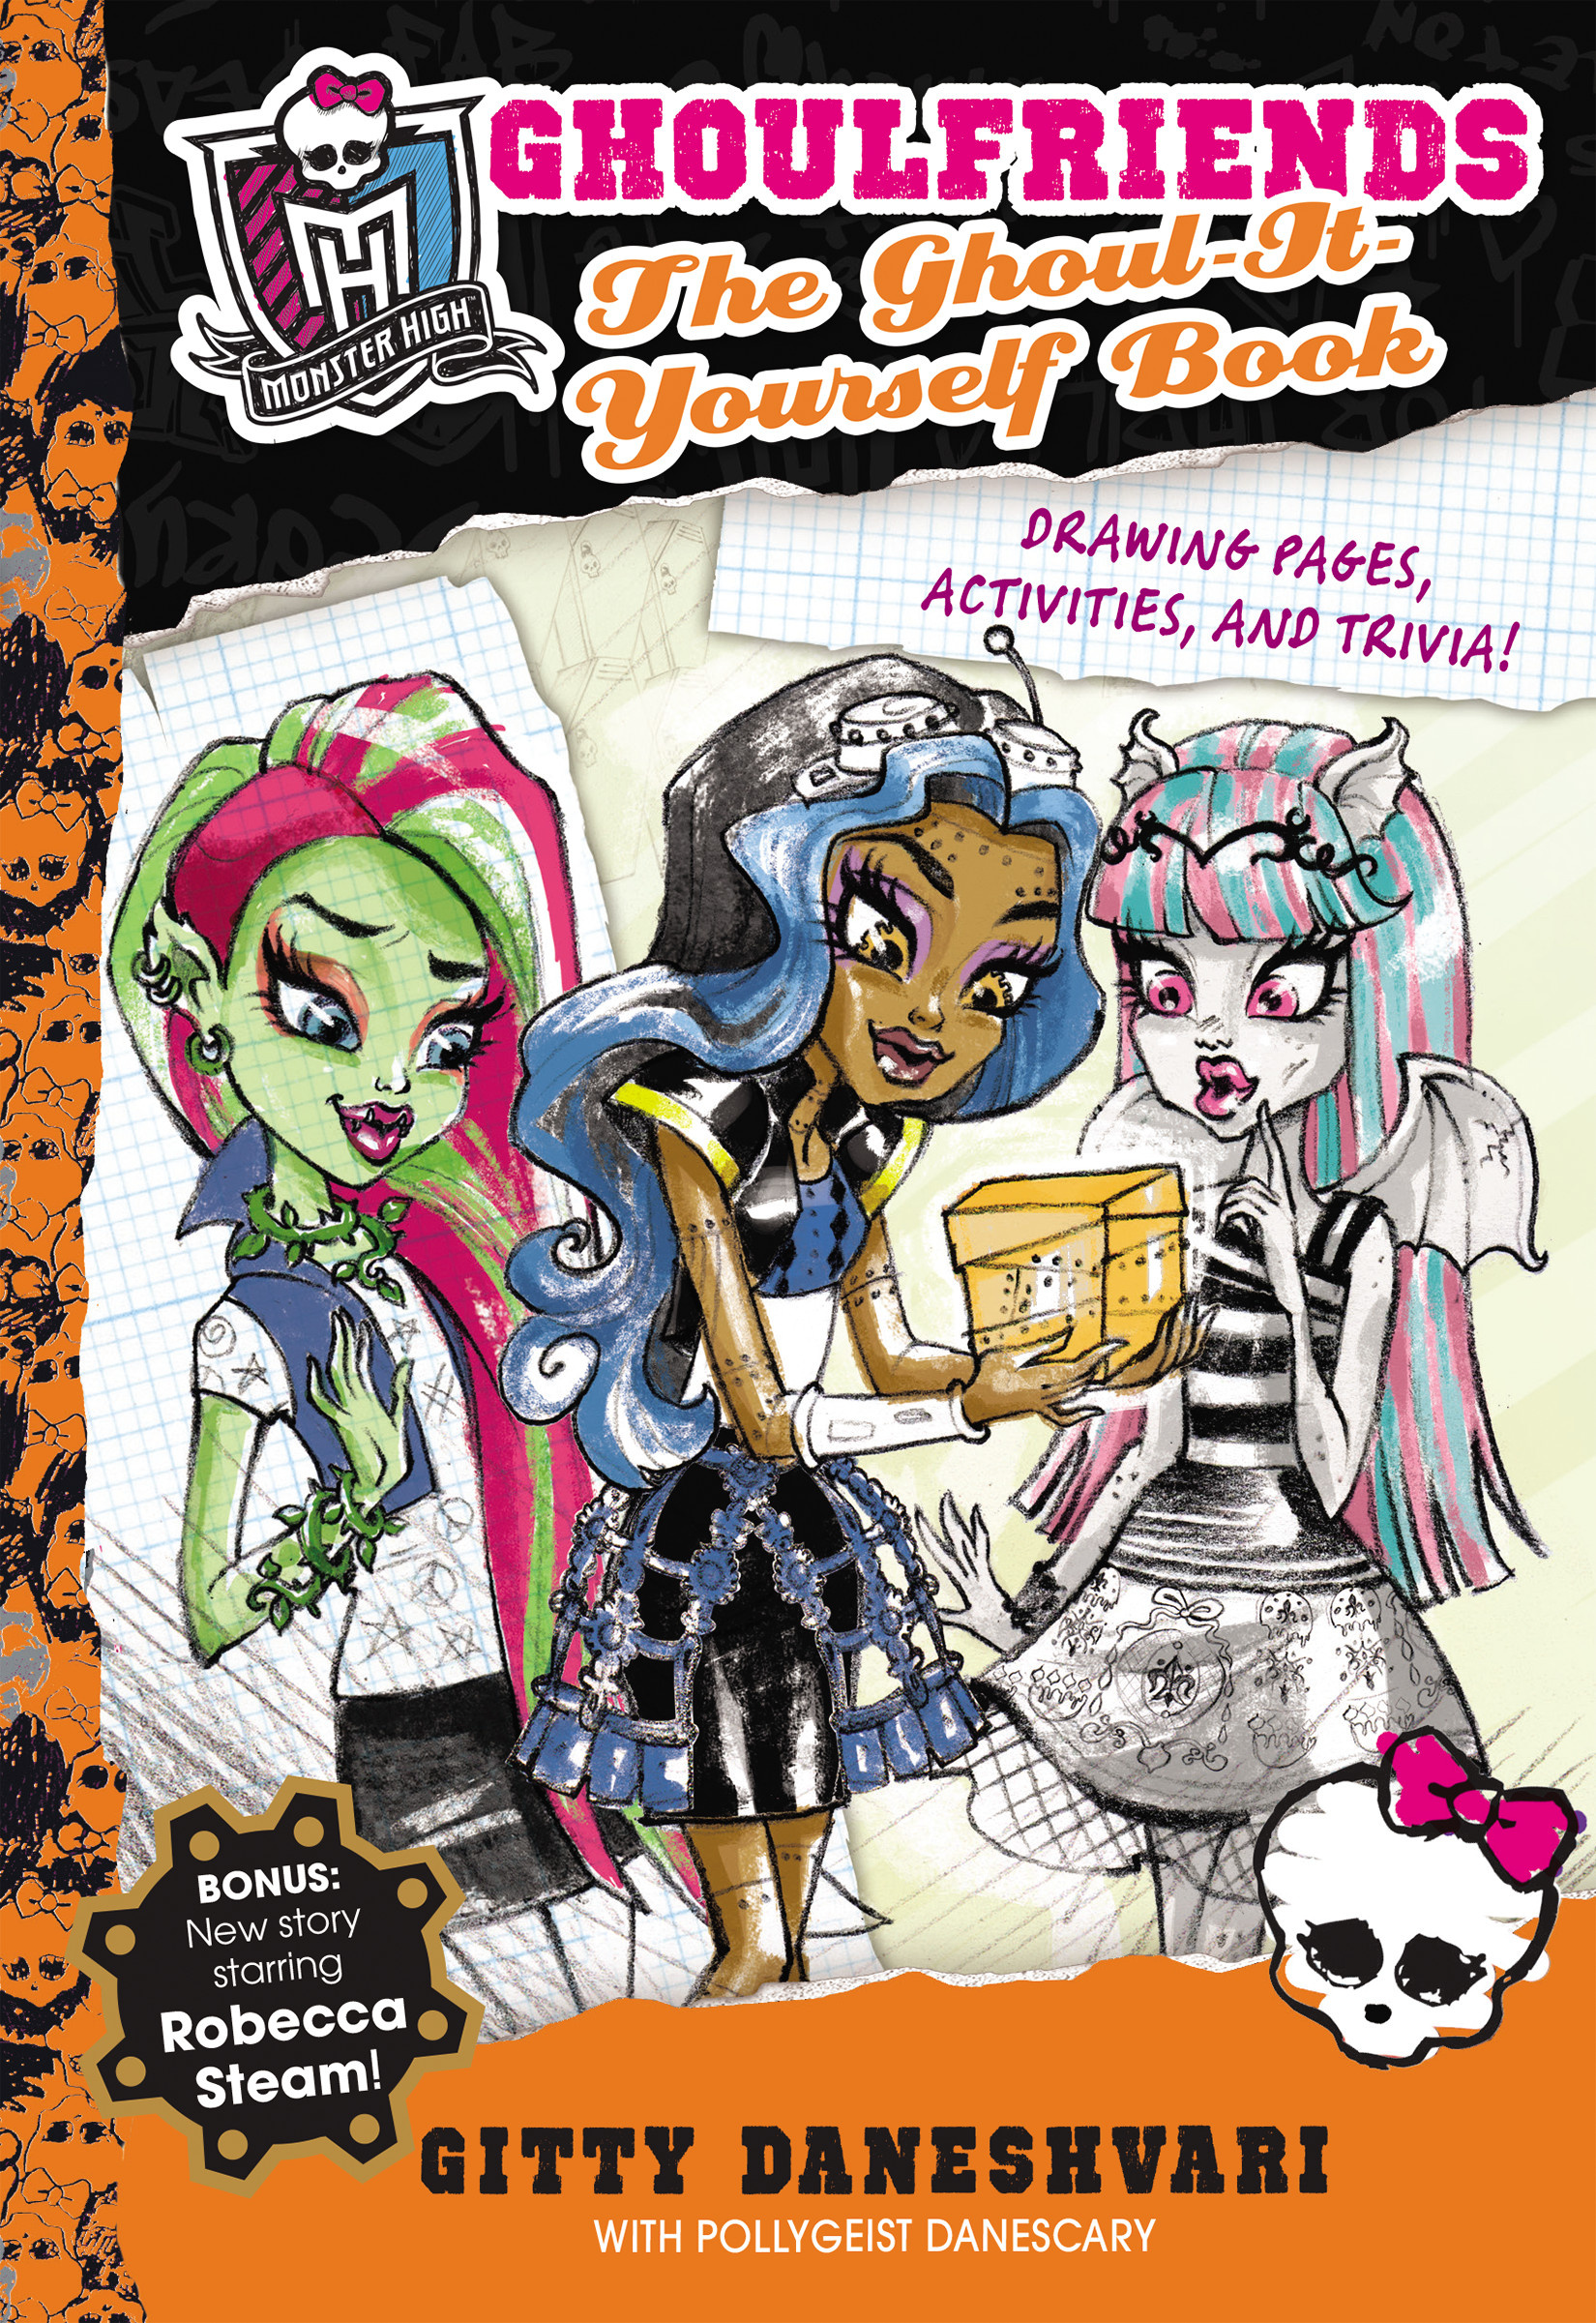 Monster high the ghoul it yourself book ghoulfriends forever book monster high interest age from c 8 years fiction general fiction childrens teenage adventure stories childrens teenage fantasy magical solutioingenieria Choice Image